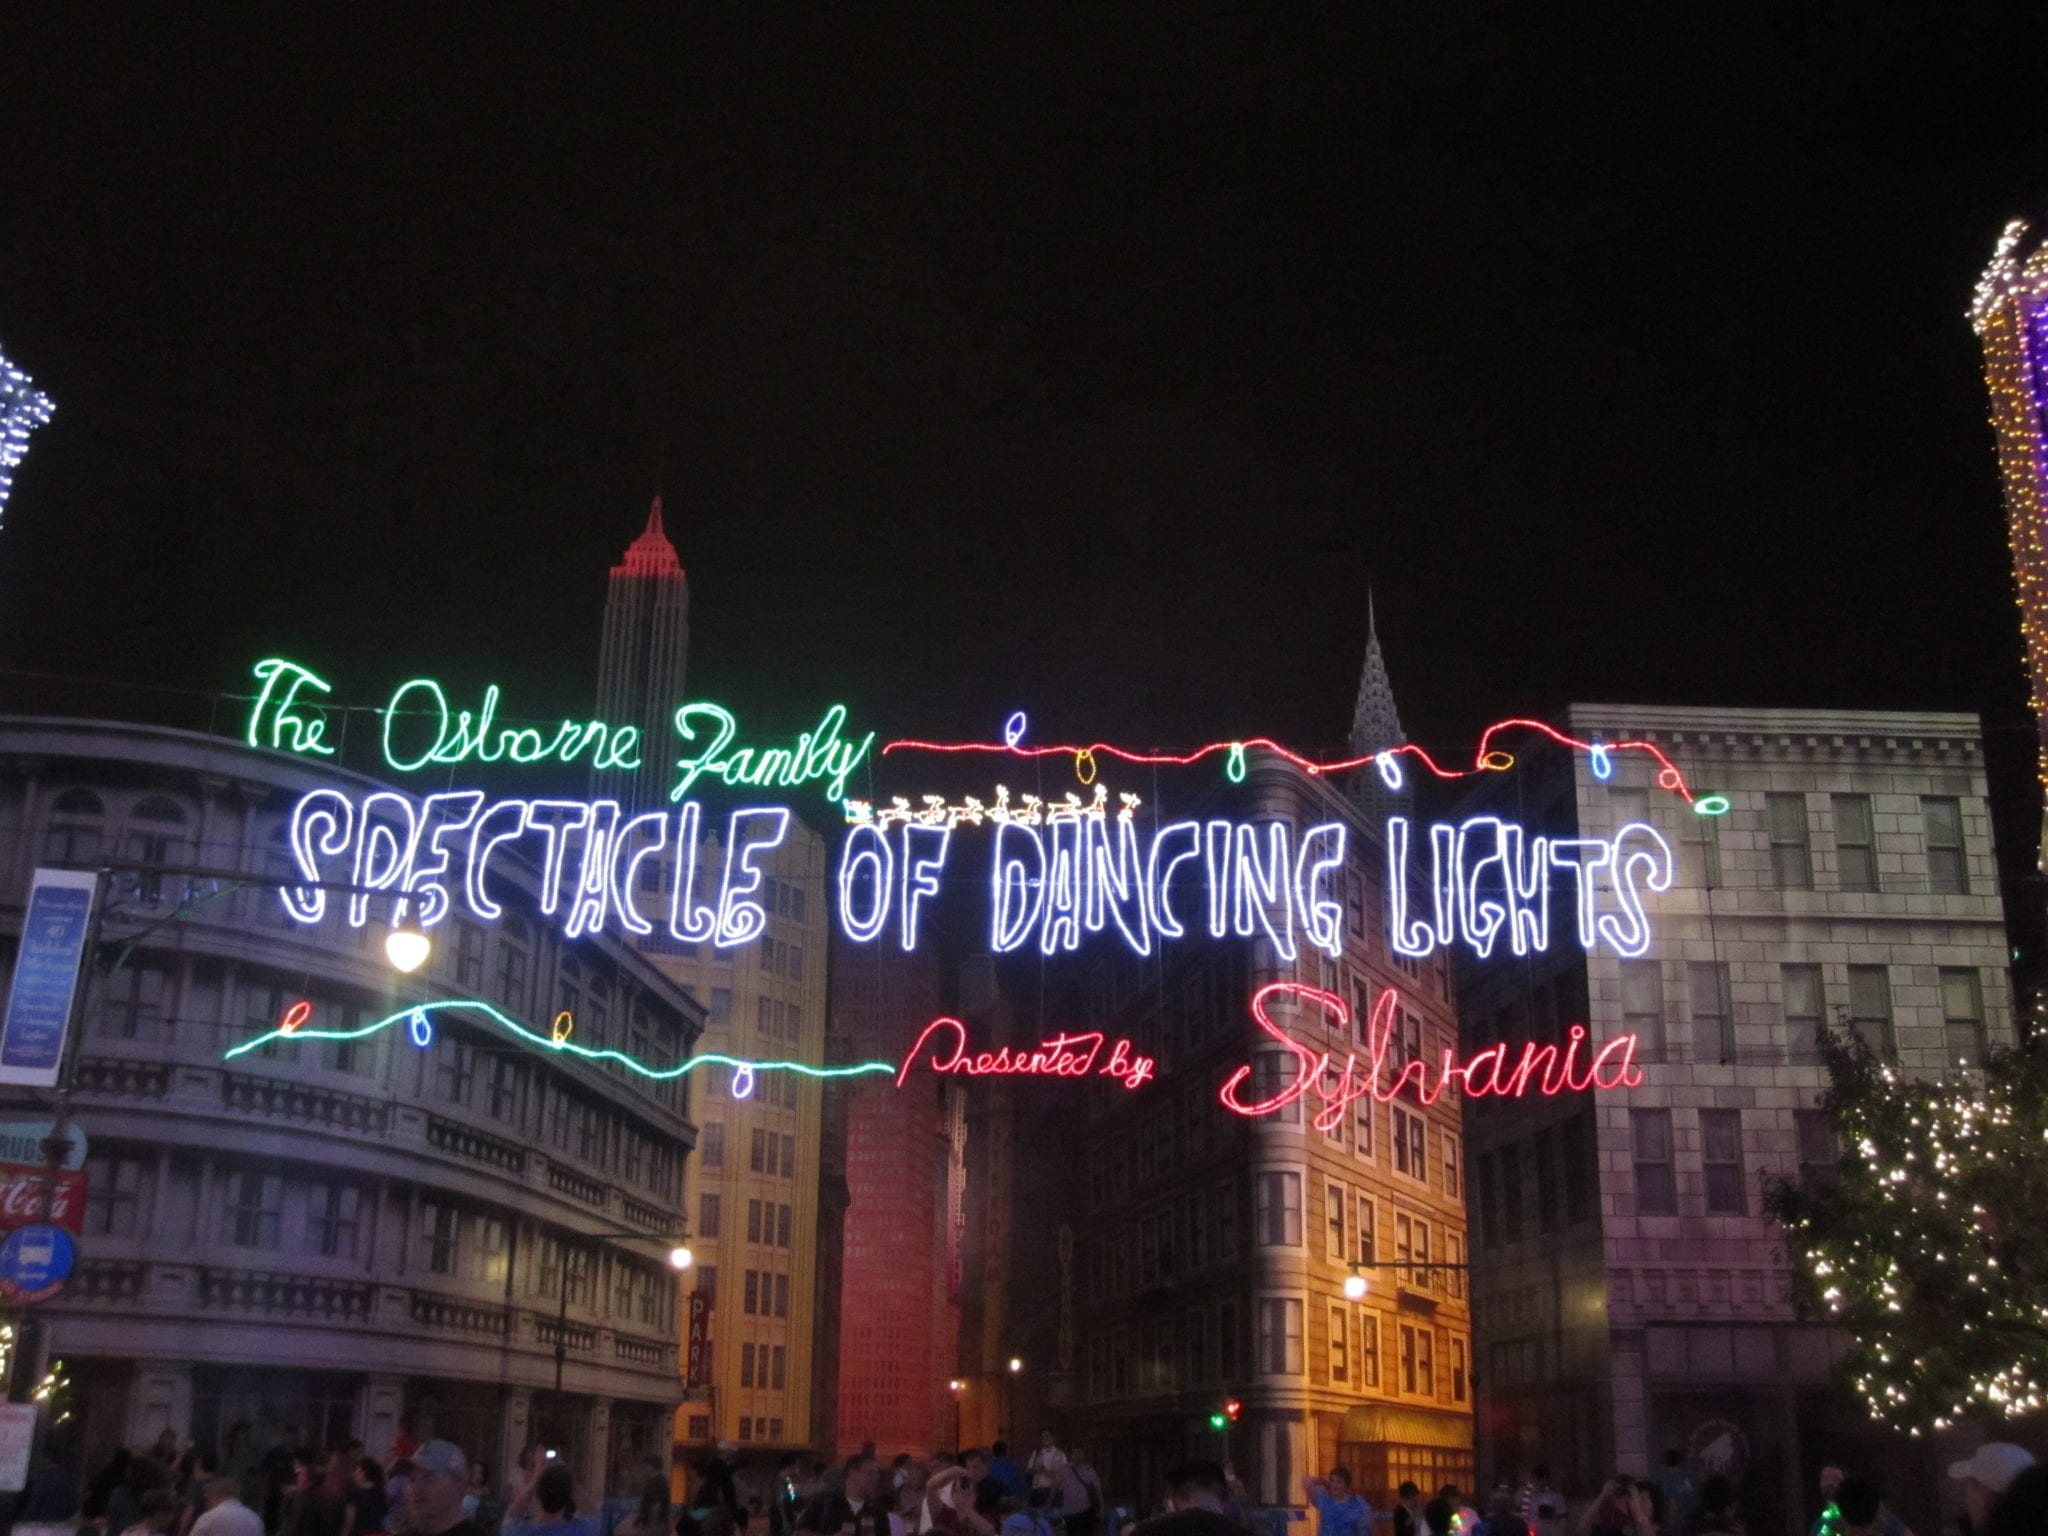 TMSM Explains The Osborne Family Spectacle of Dancing Lights 5